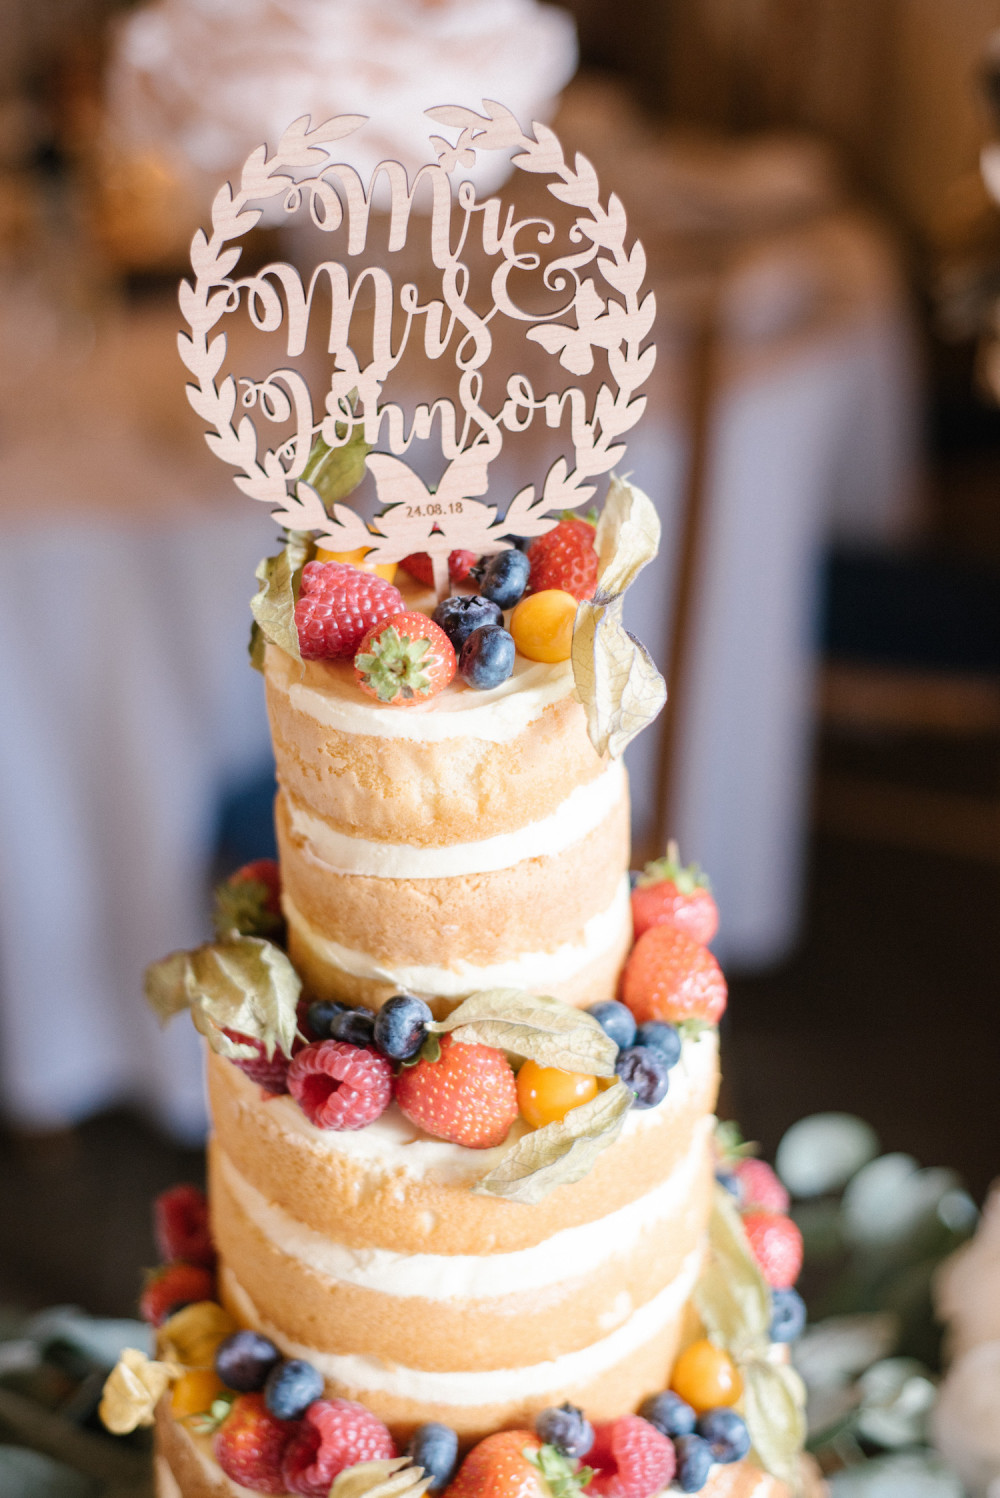 Tall layered sponge wedding cake with fruits